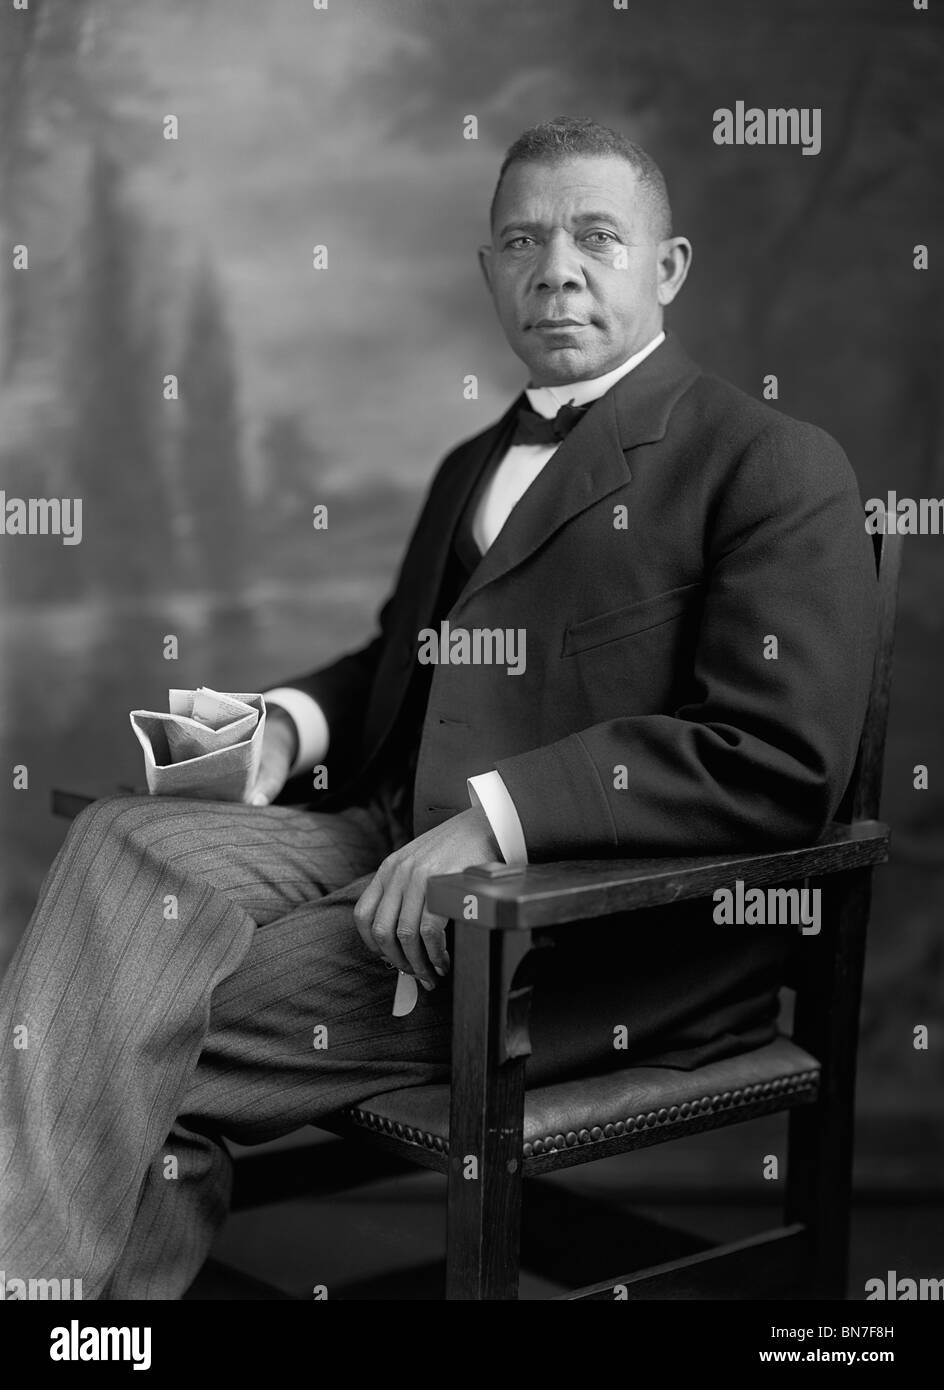 Portrait photo of African-American political leader, educator, orator and author Booker T Washington (1856 - 1915). - Stock Image